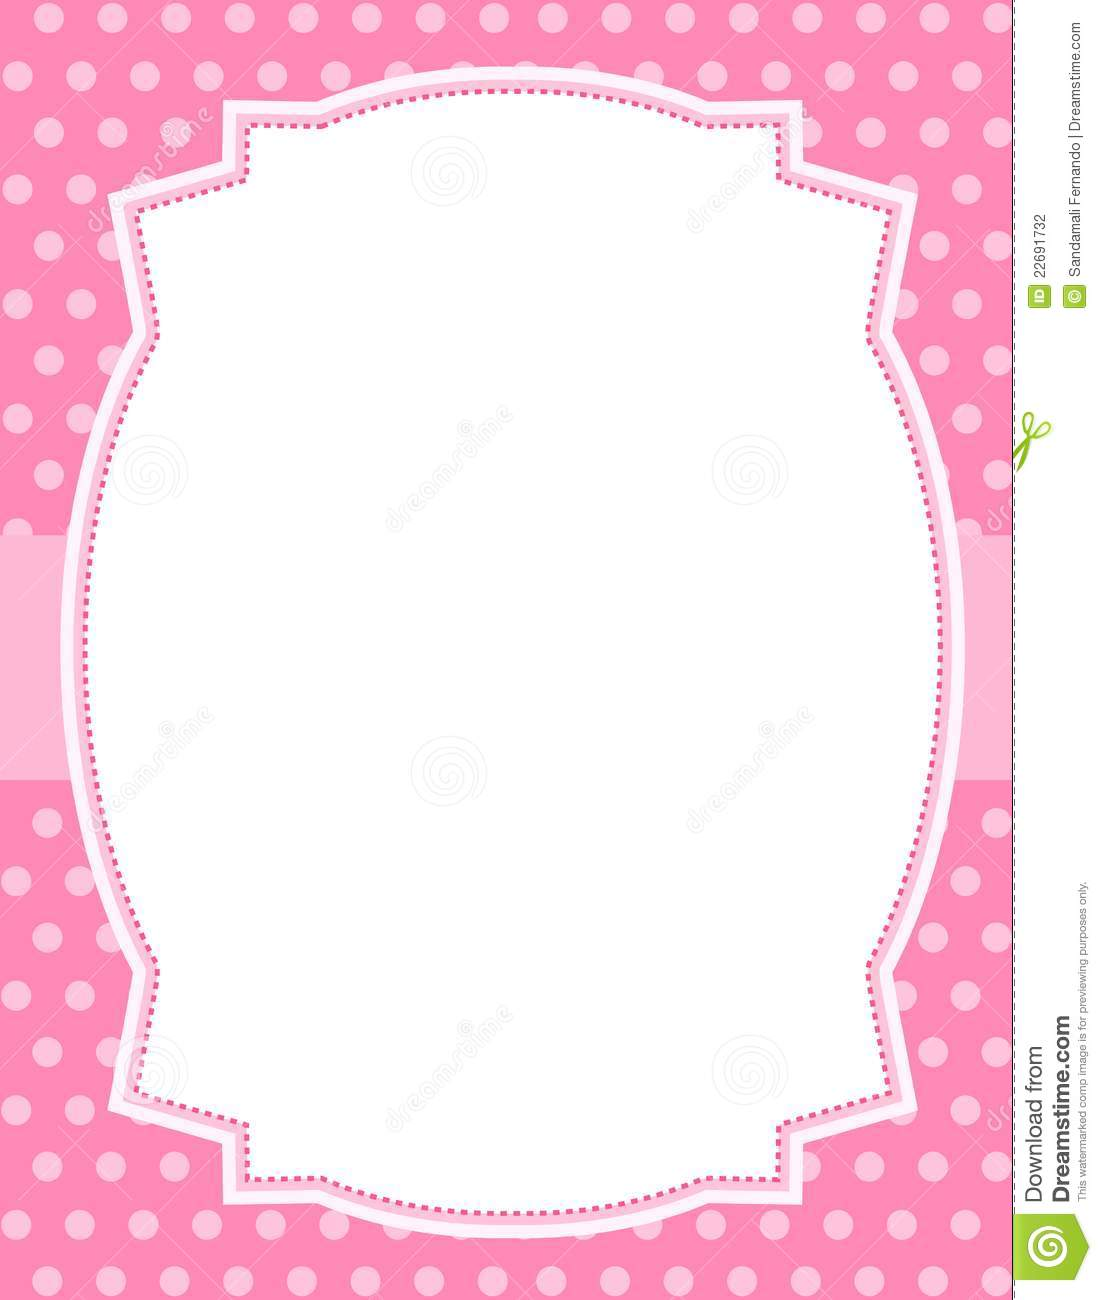 Girly Photo Frames - Page 6 - Frame Design & Reviews ✓